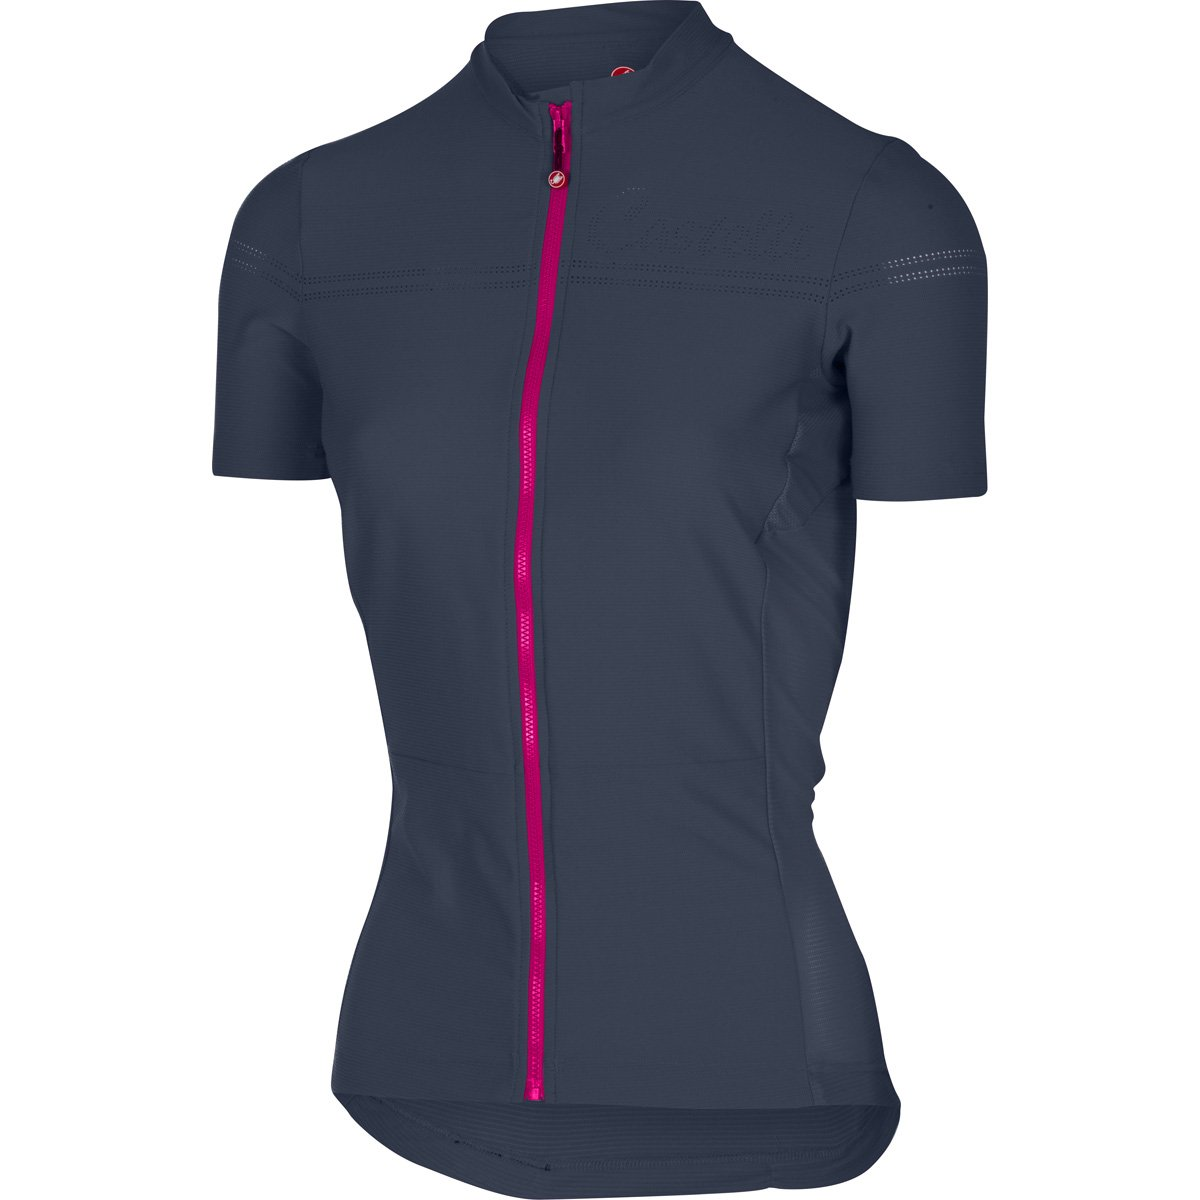 Castelli レプリカユニフォーム レディース プロメッサ 2 B0722D6BT1 Small|Midnight Navy/Raspberry Midnight Navy/Raspberry Small